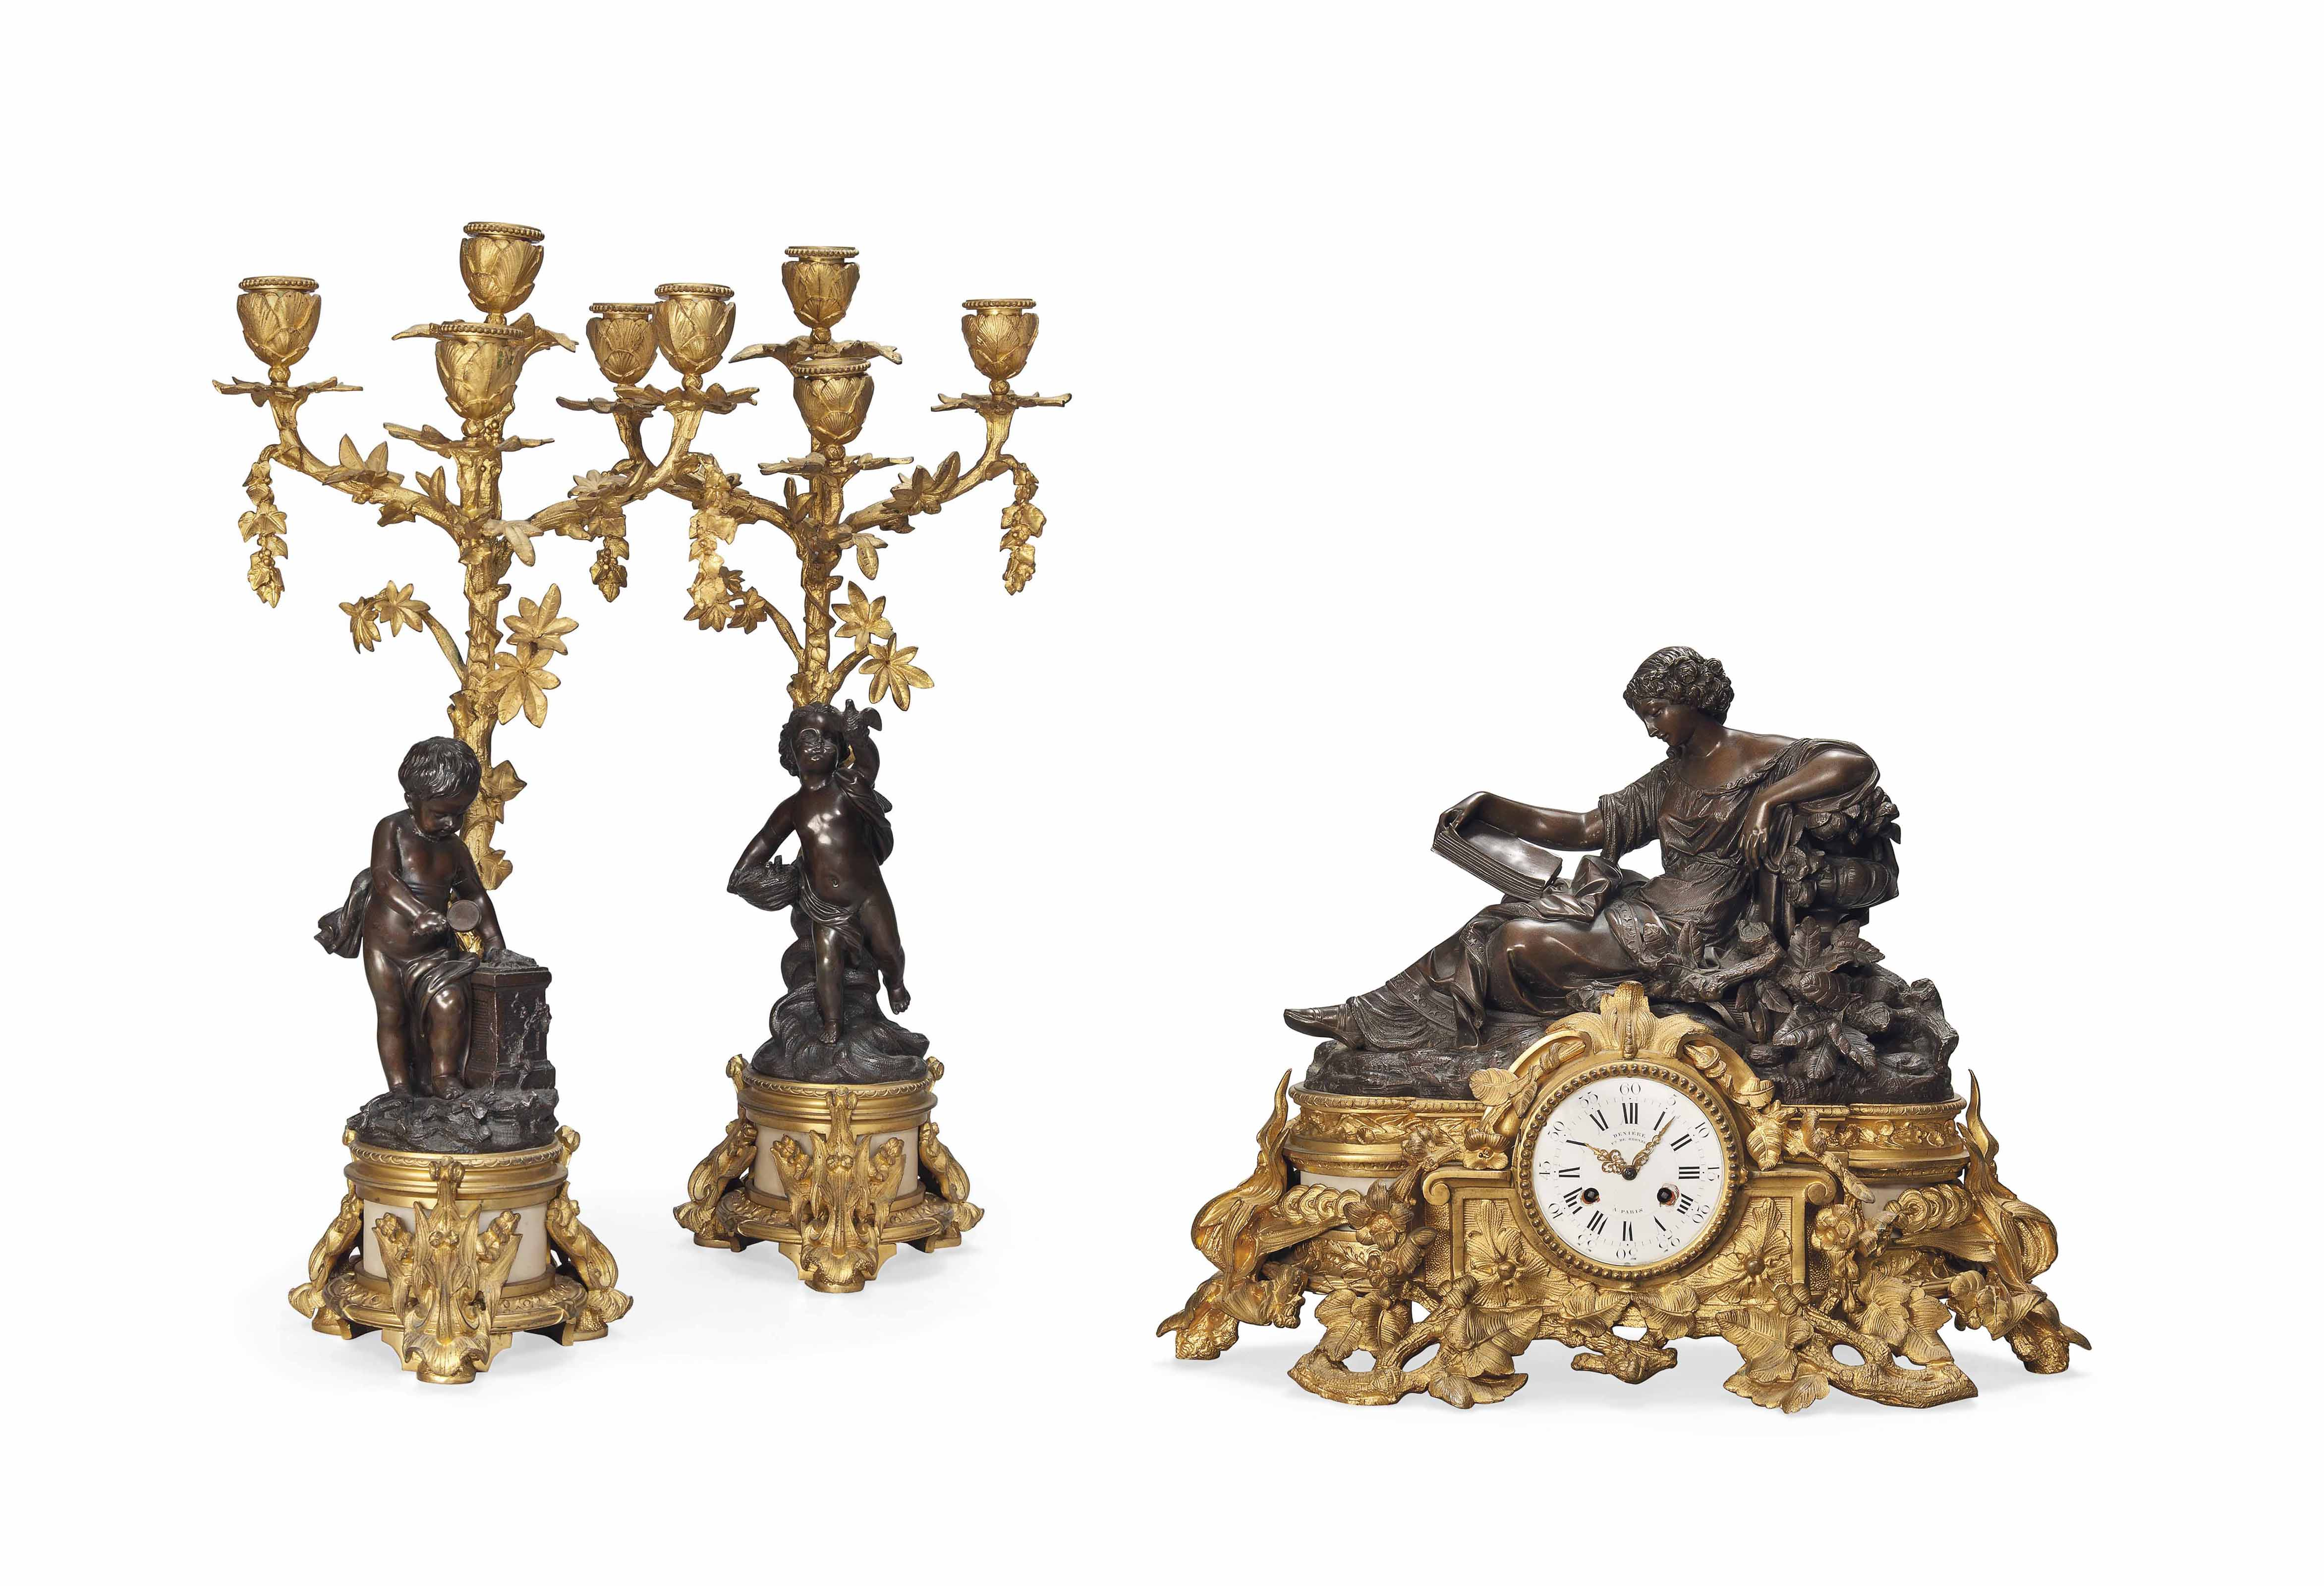 A FRENCH THREE-PIECE GILT AND PATINATED BRONZE AND MARBLE CLOCK GARNITURE